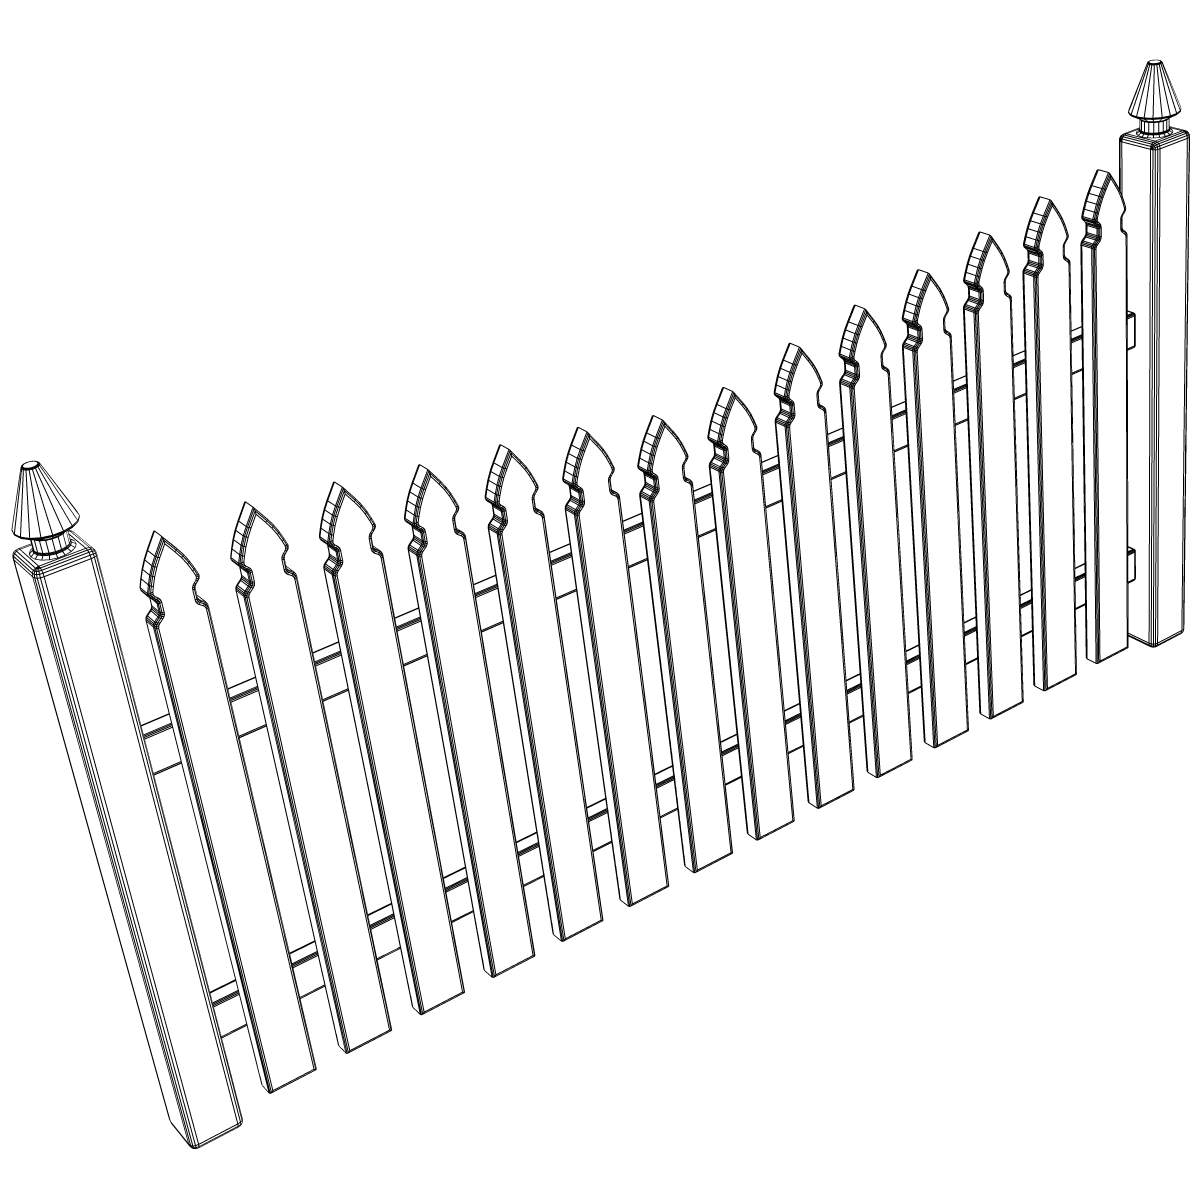 picket fence drawing. 1200x1200 Gothic Spaced Picket Fence 3D CGTrader Drawing